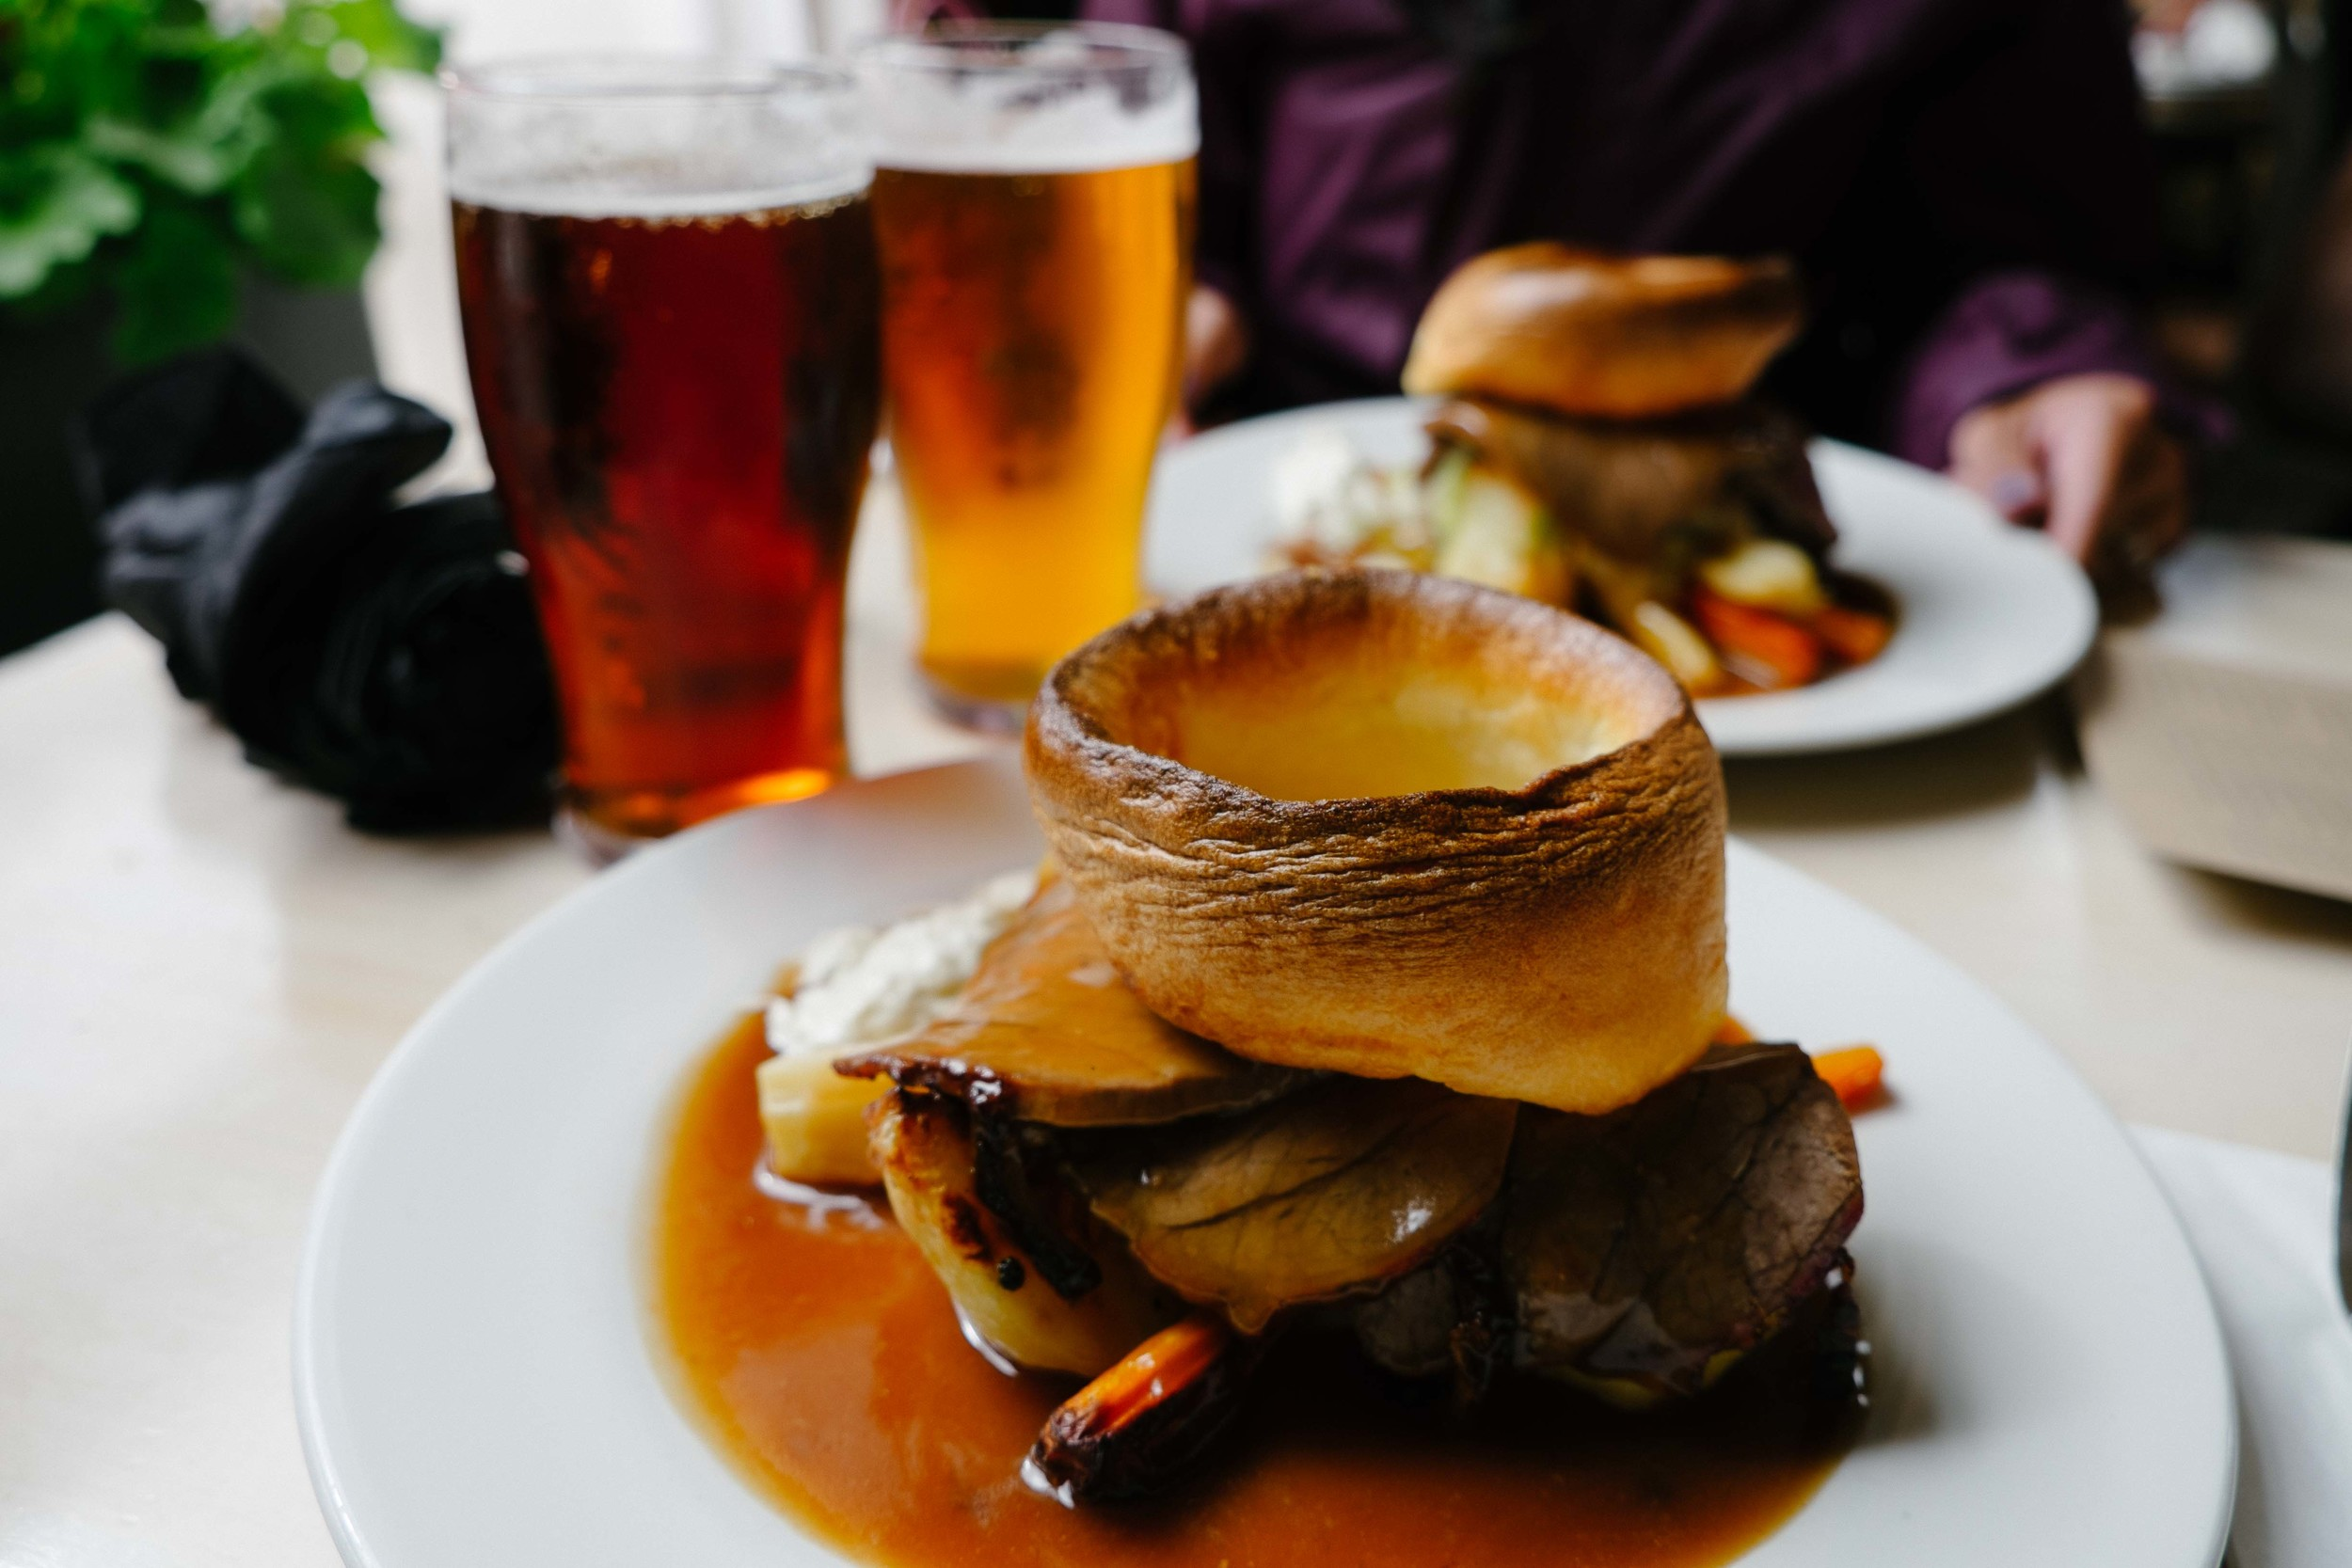 Our very first Sunday roast at The Princess of Wales Restaurant